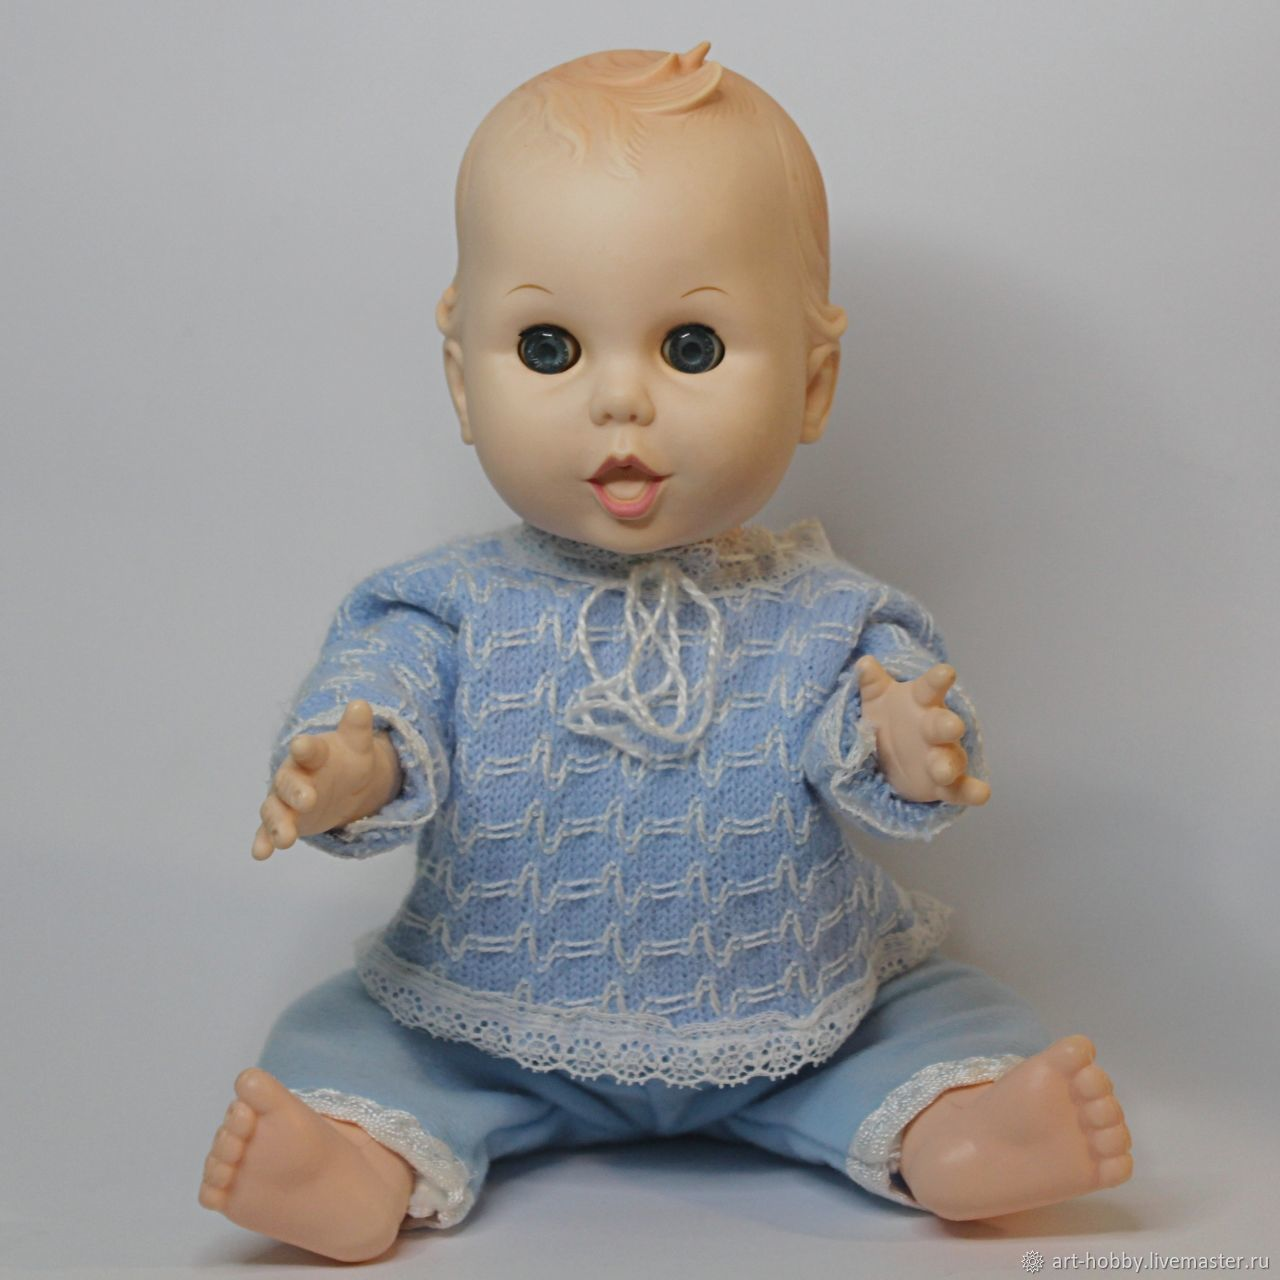 Doll GERBER (2), Vintage doll, Moscow,  Фото №1